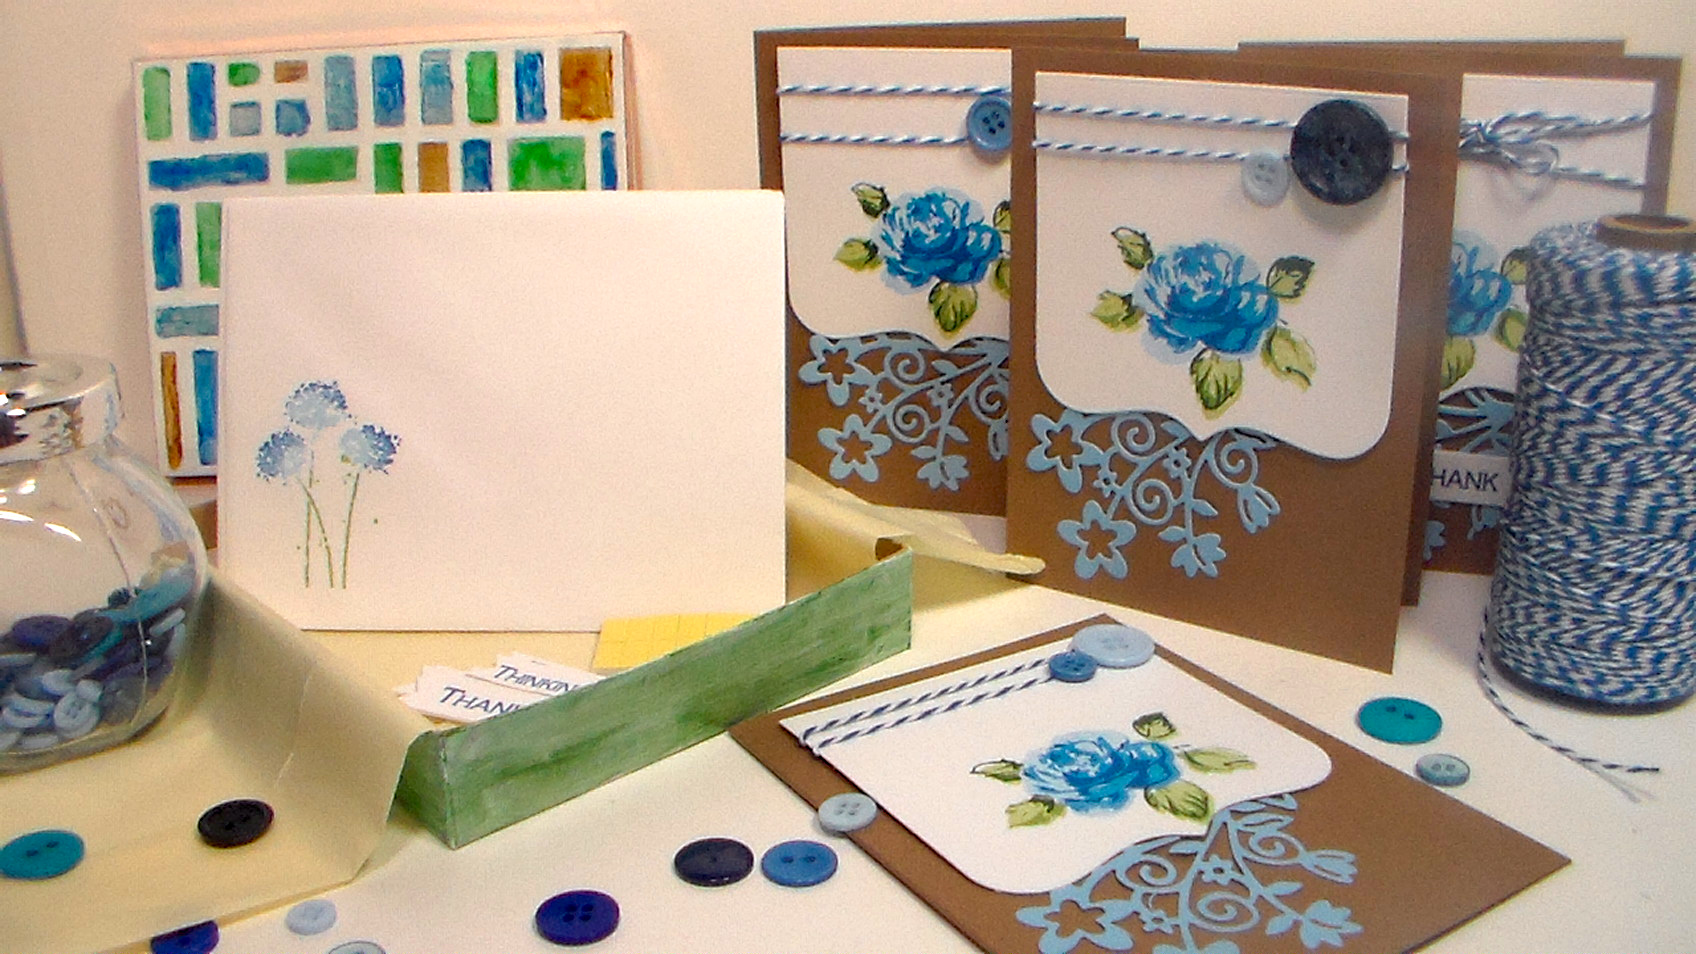 Gift Ideas The Frugal Crafter Blog Wetbrush Watercolor Mossaics Starburst Actually I Wanted To Save It Because Thought Would Come In A Bit More Handy When You Were Getting Ready Start Making Handmade Holiday Gifts